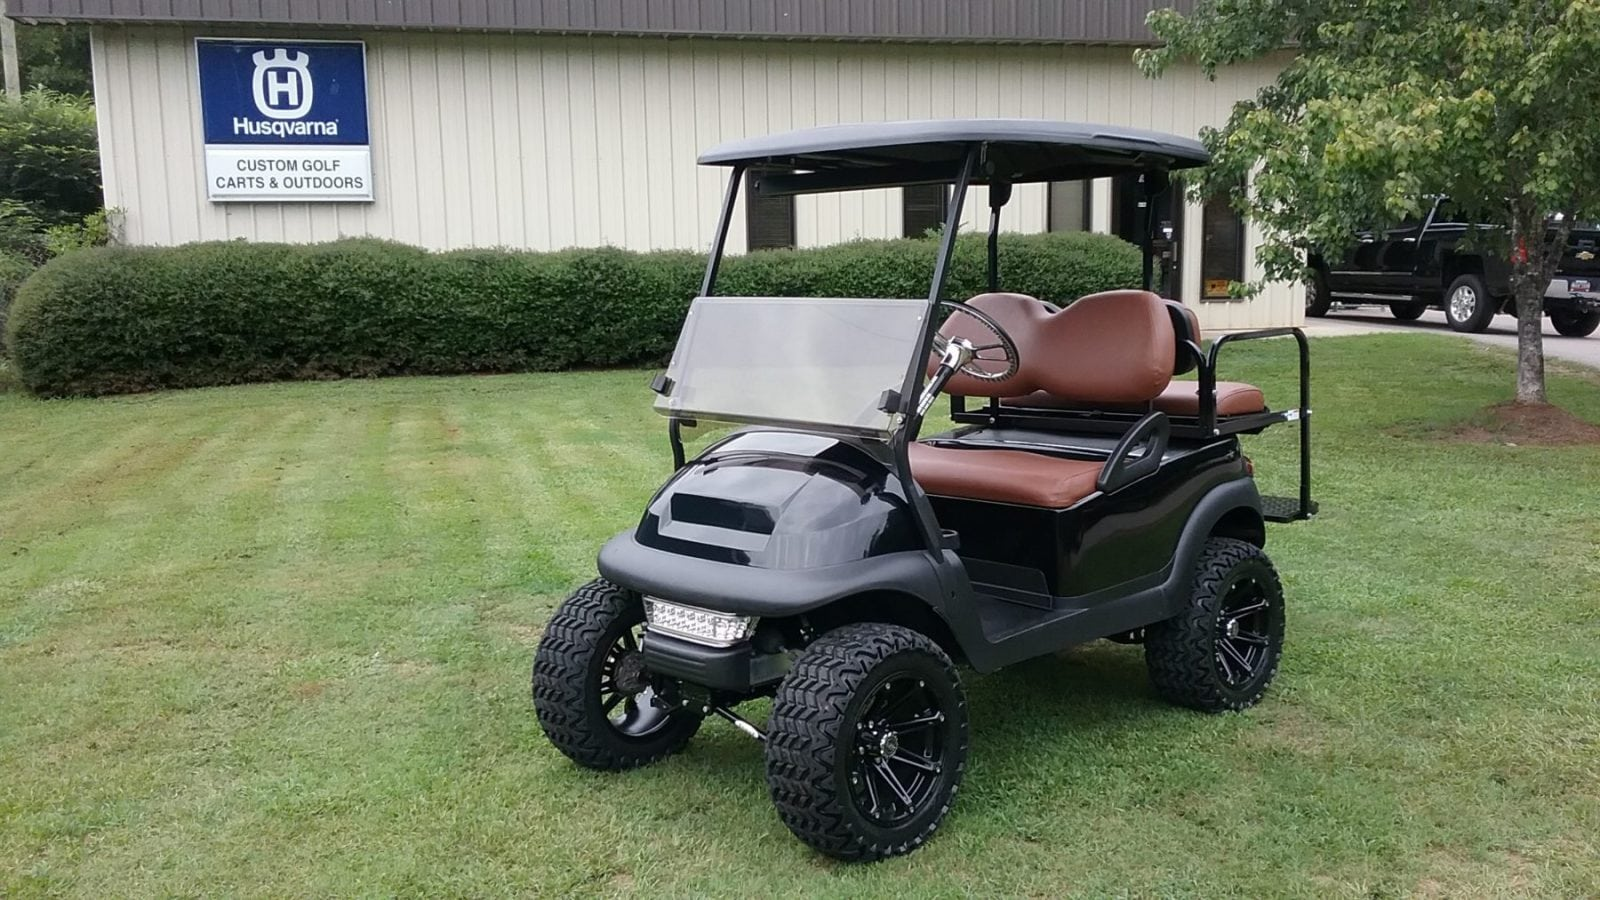 club car precedent saddle brown seats custom golf carts